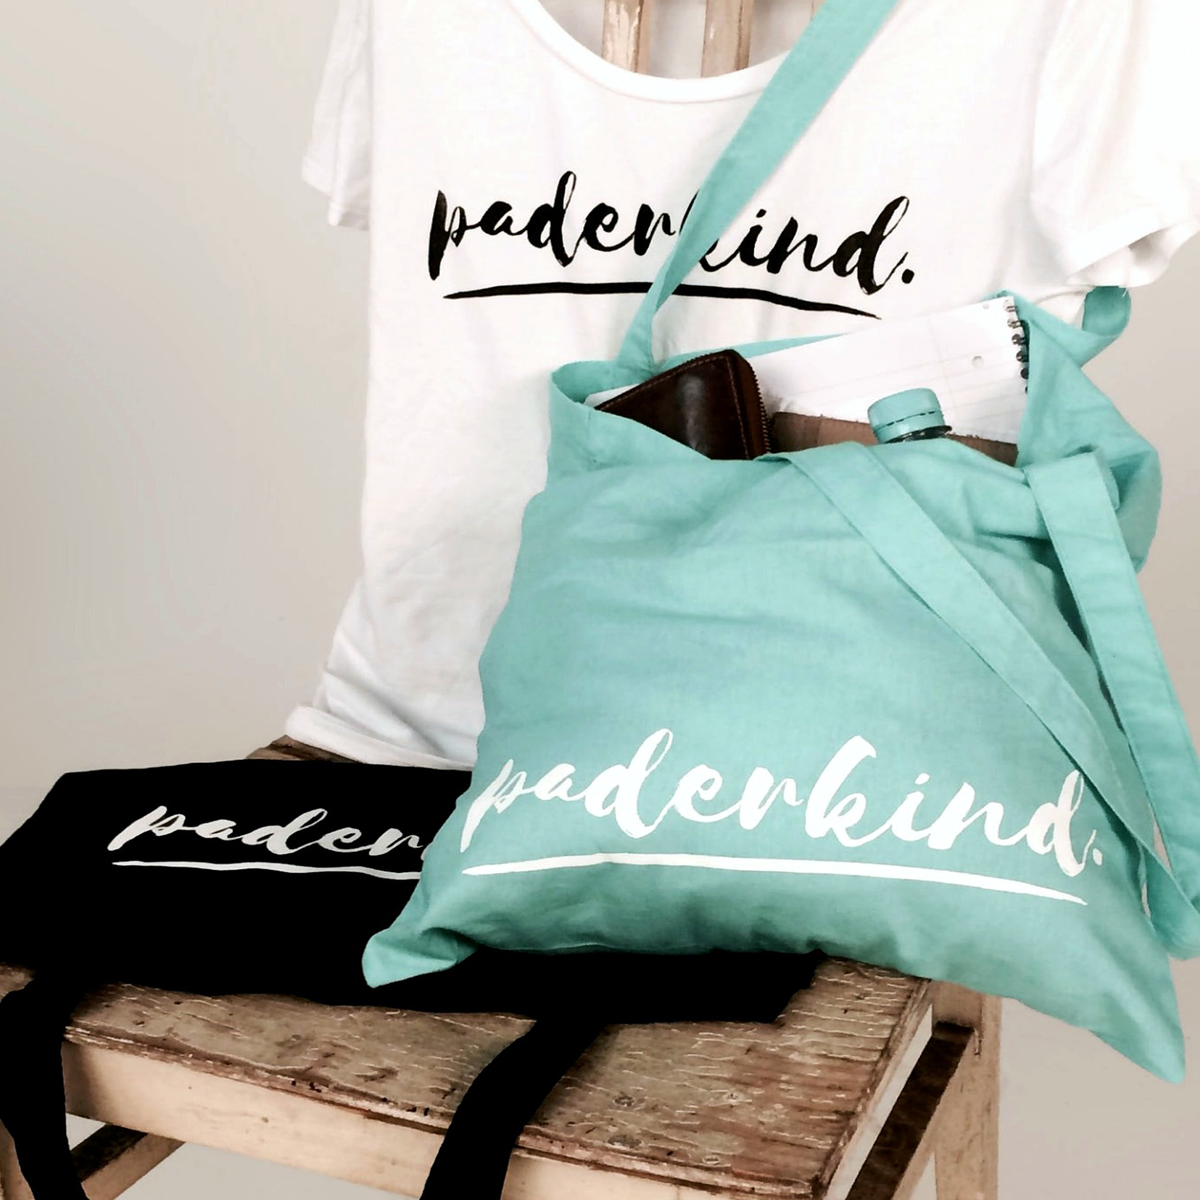 Image of Paderkind Tasche